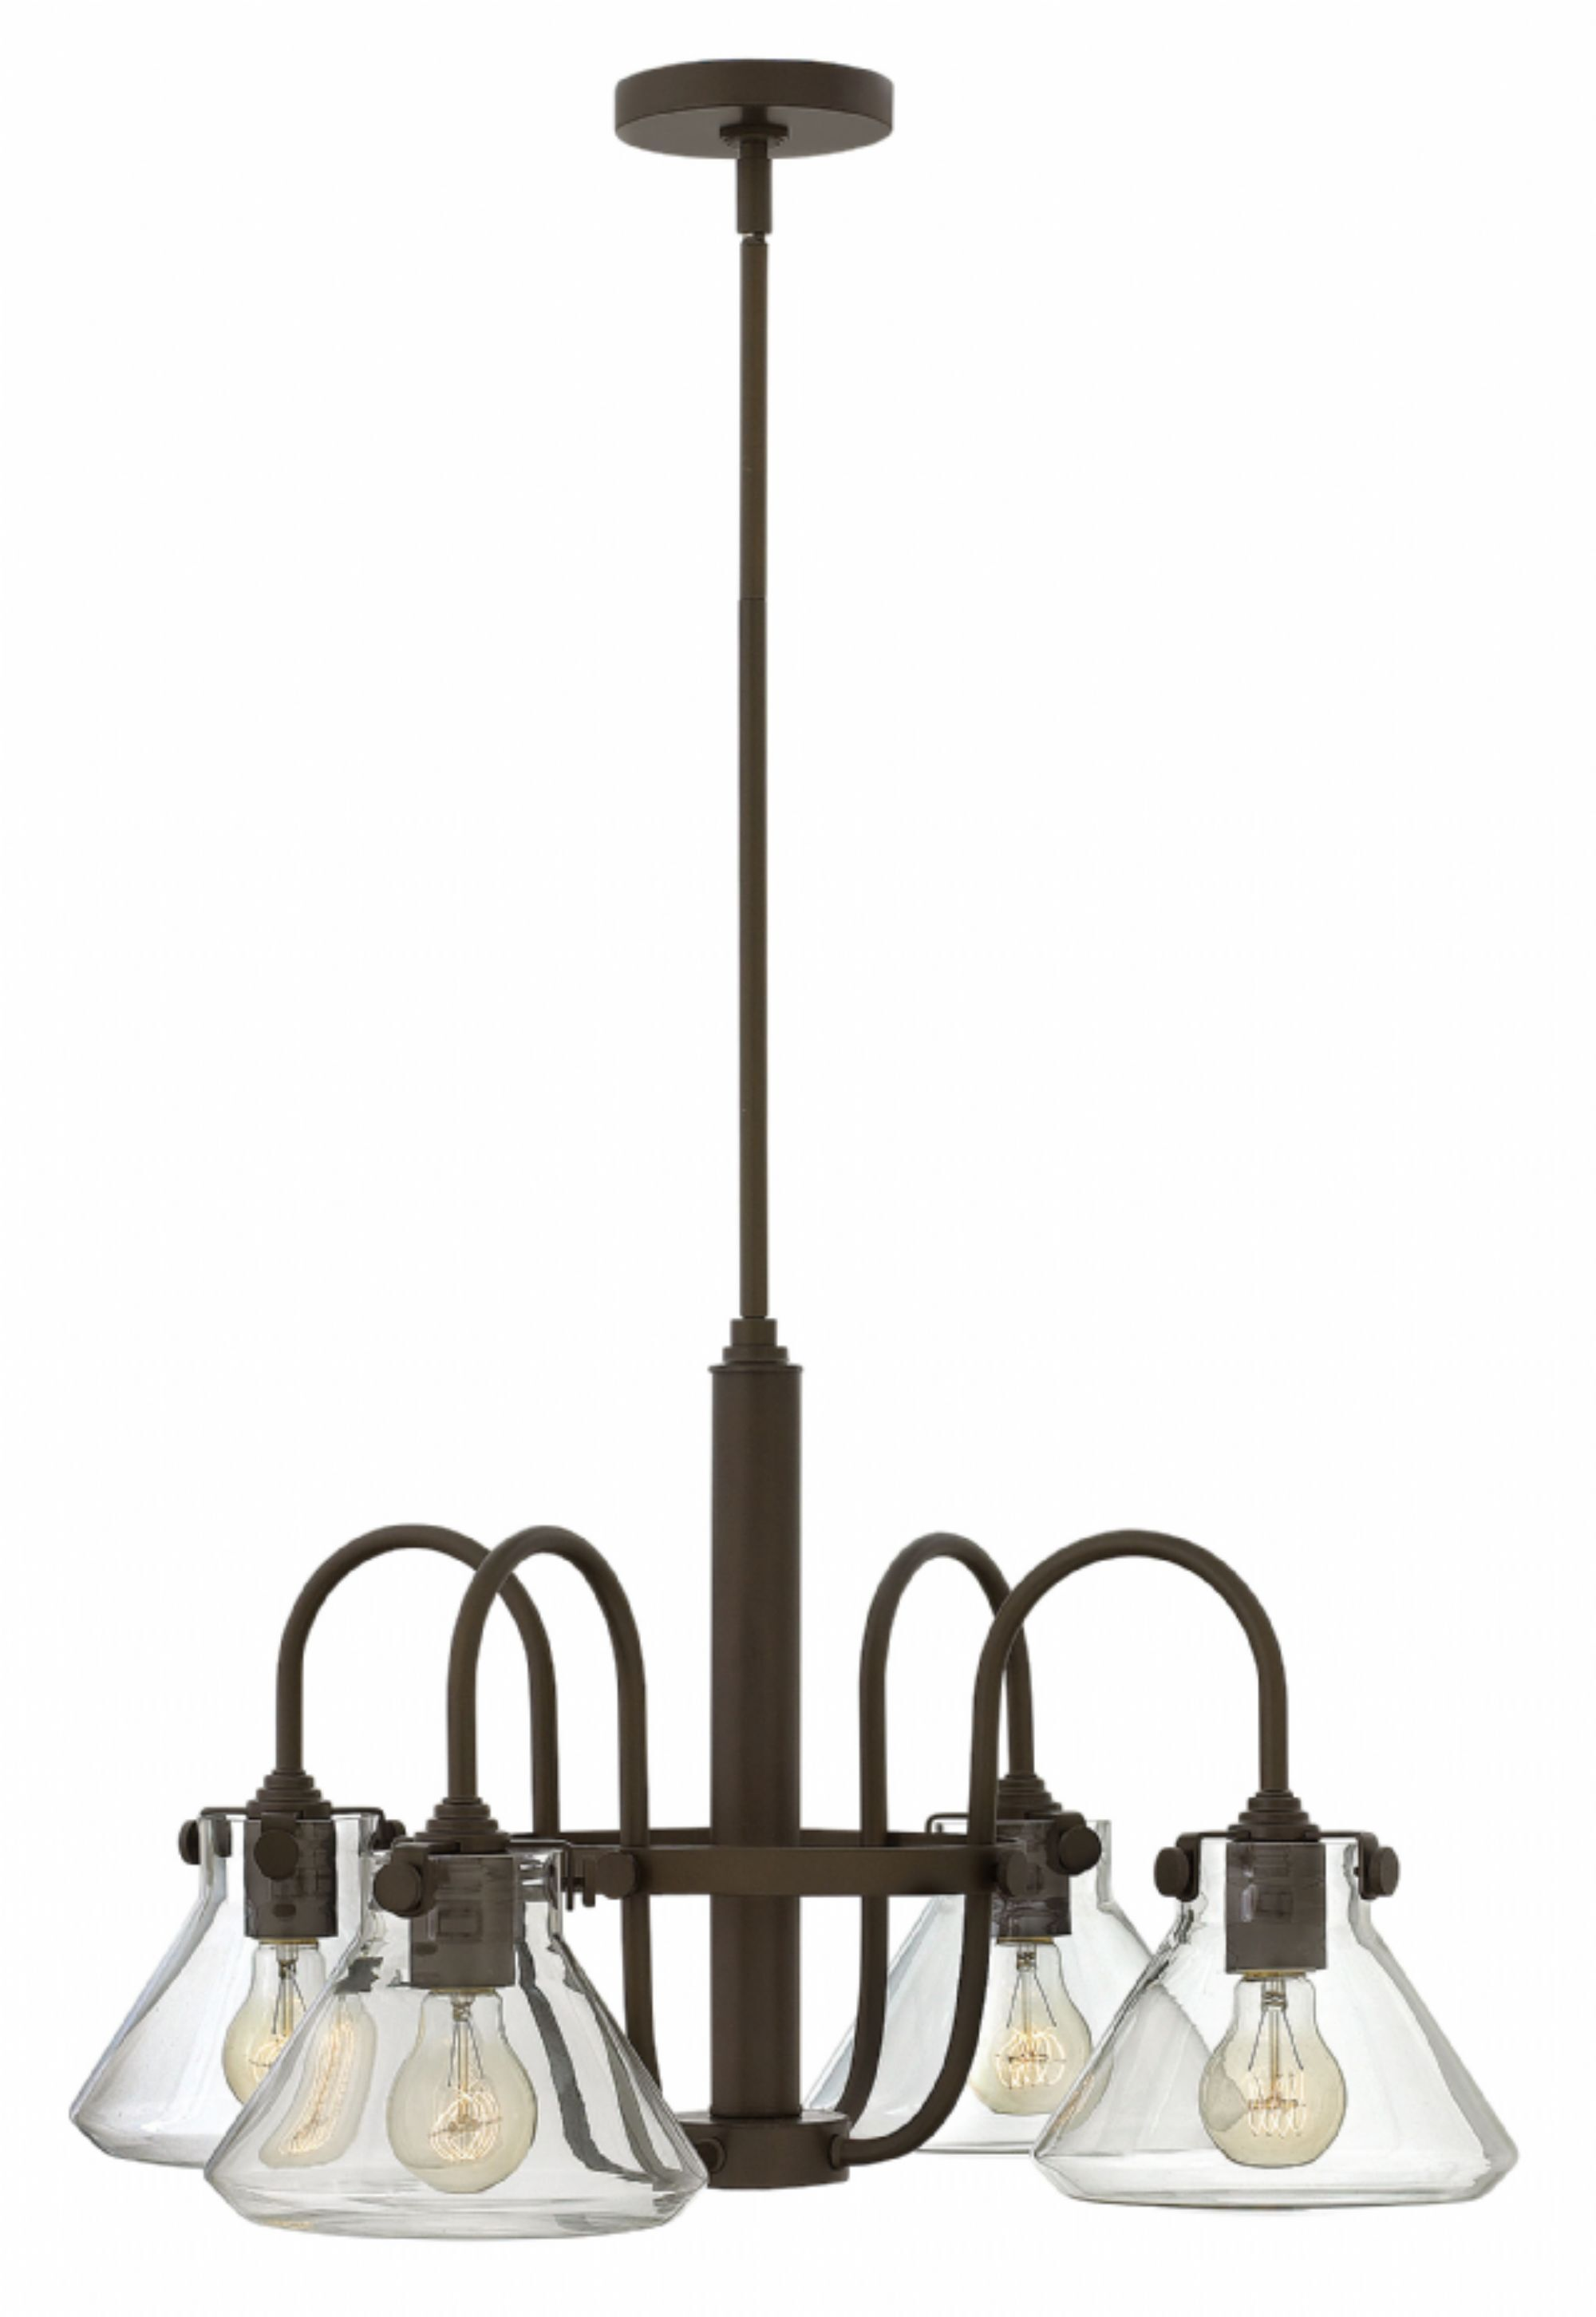 Bunnell Traditional 4-Light Shaded Chandelier Finish: Oil Rubbed Bronze